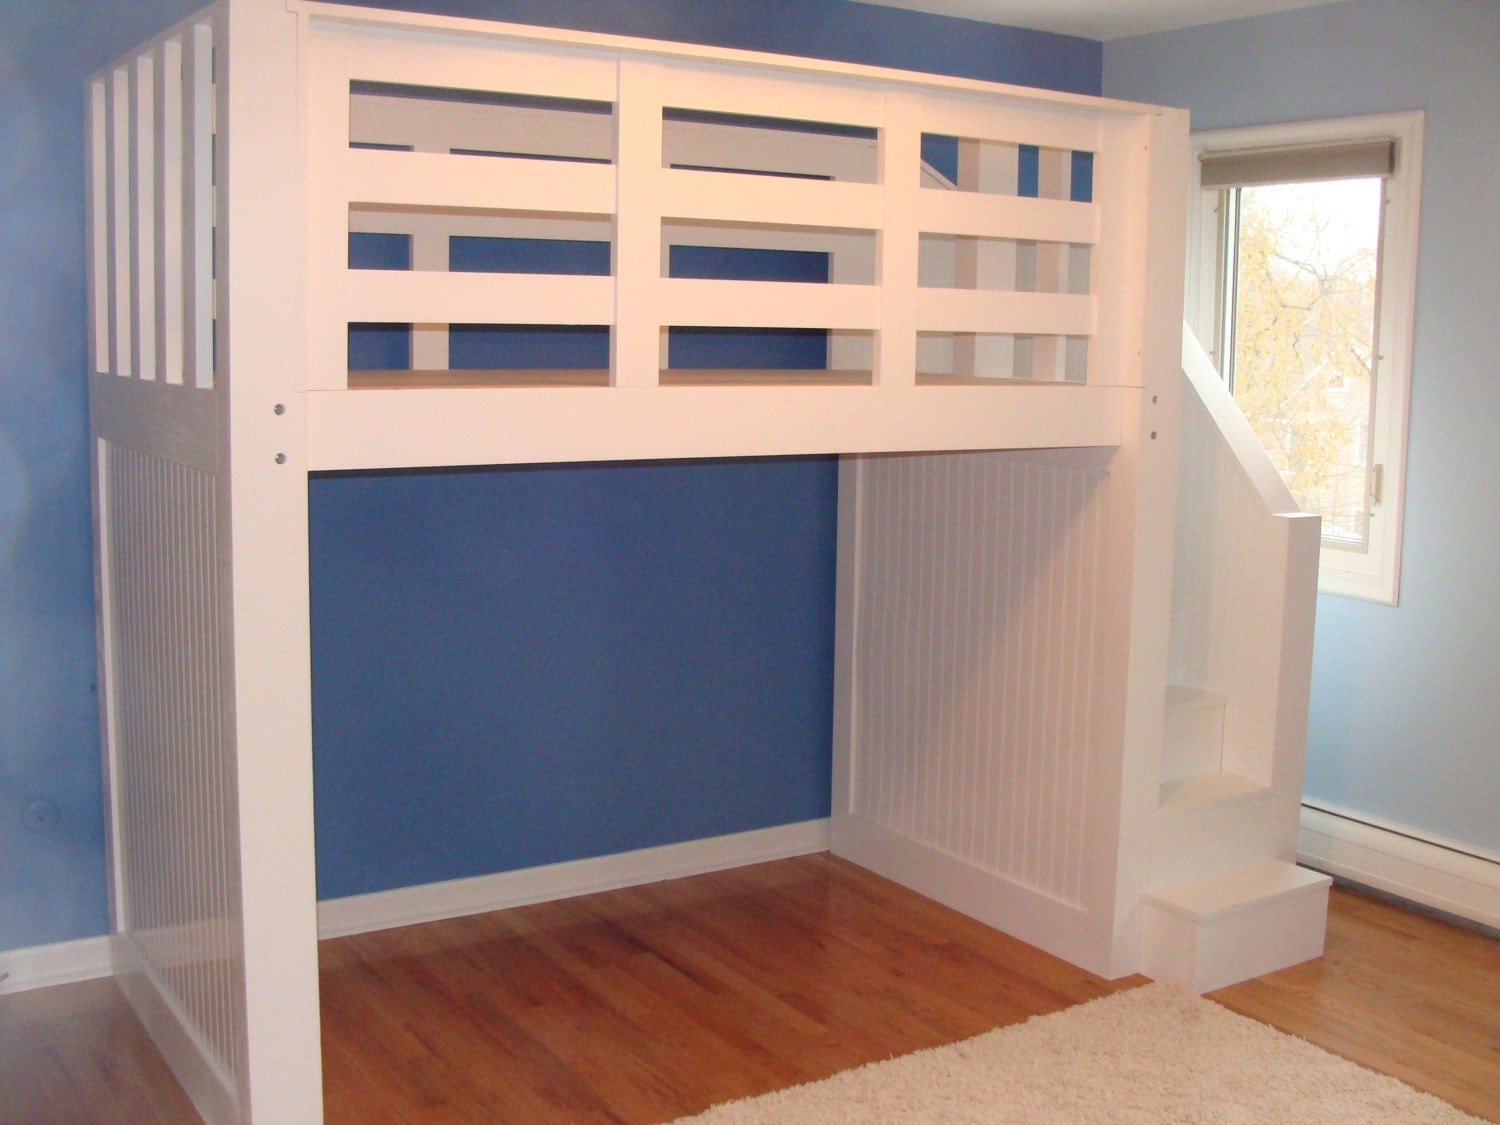 Loft bed with stairs for Bunk beds with stairs uk